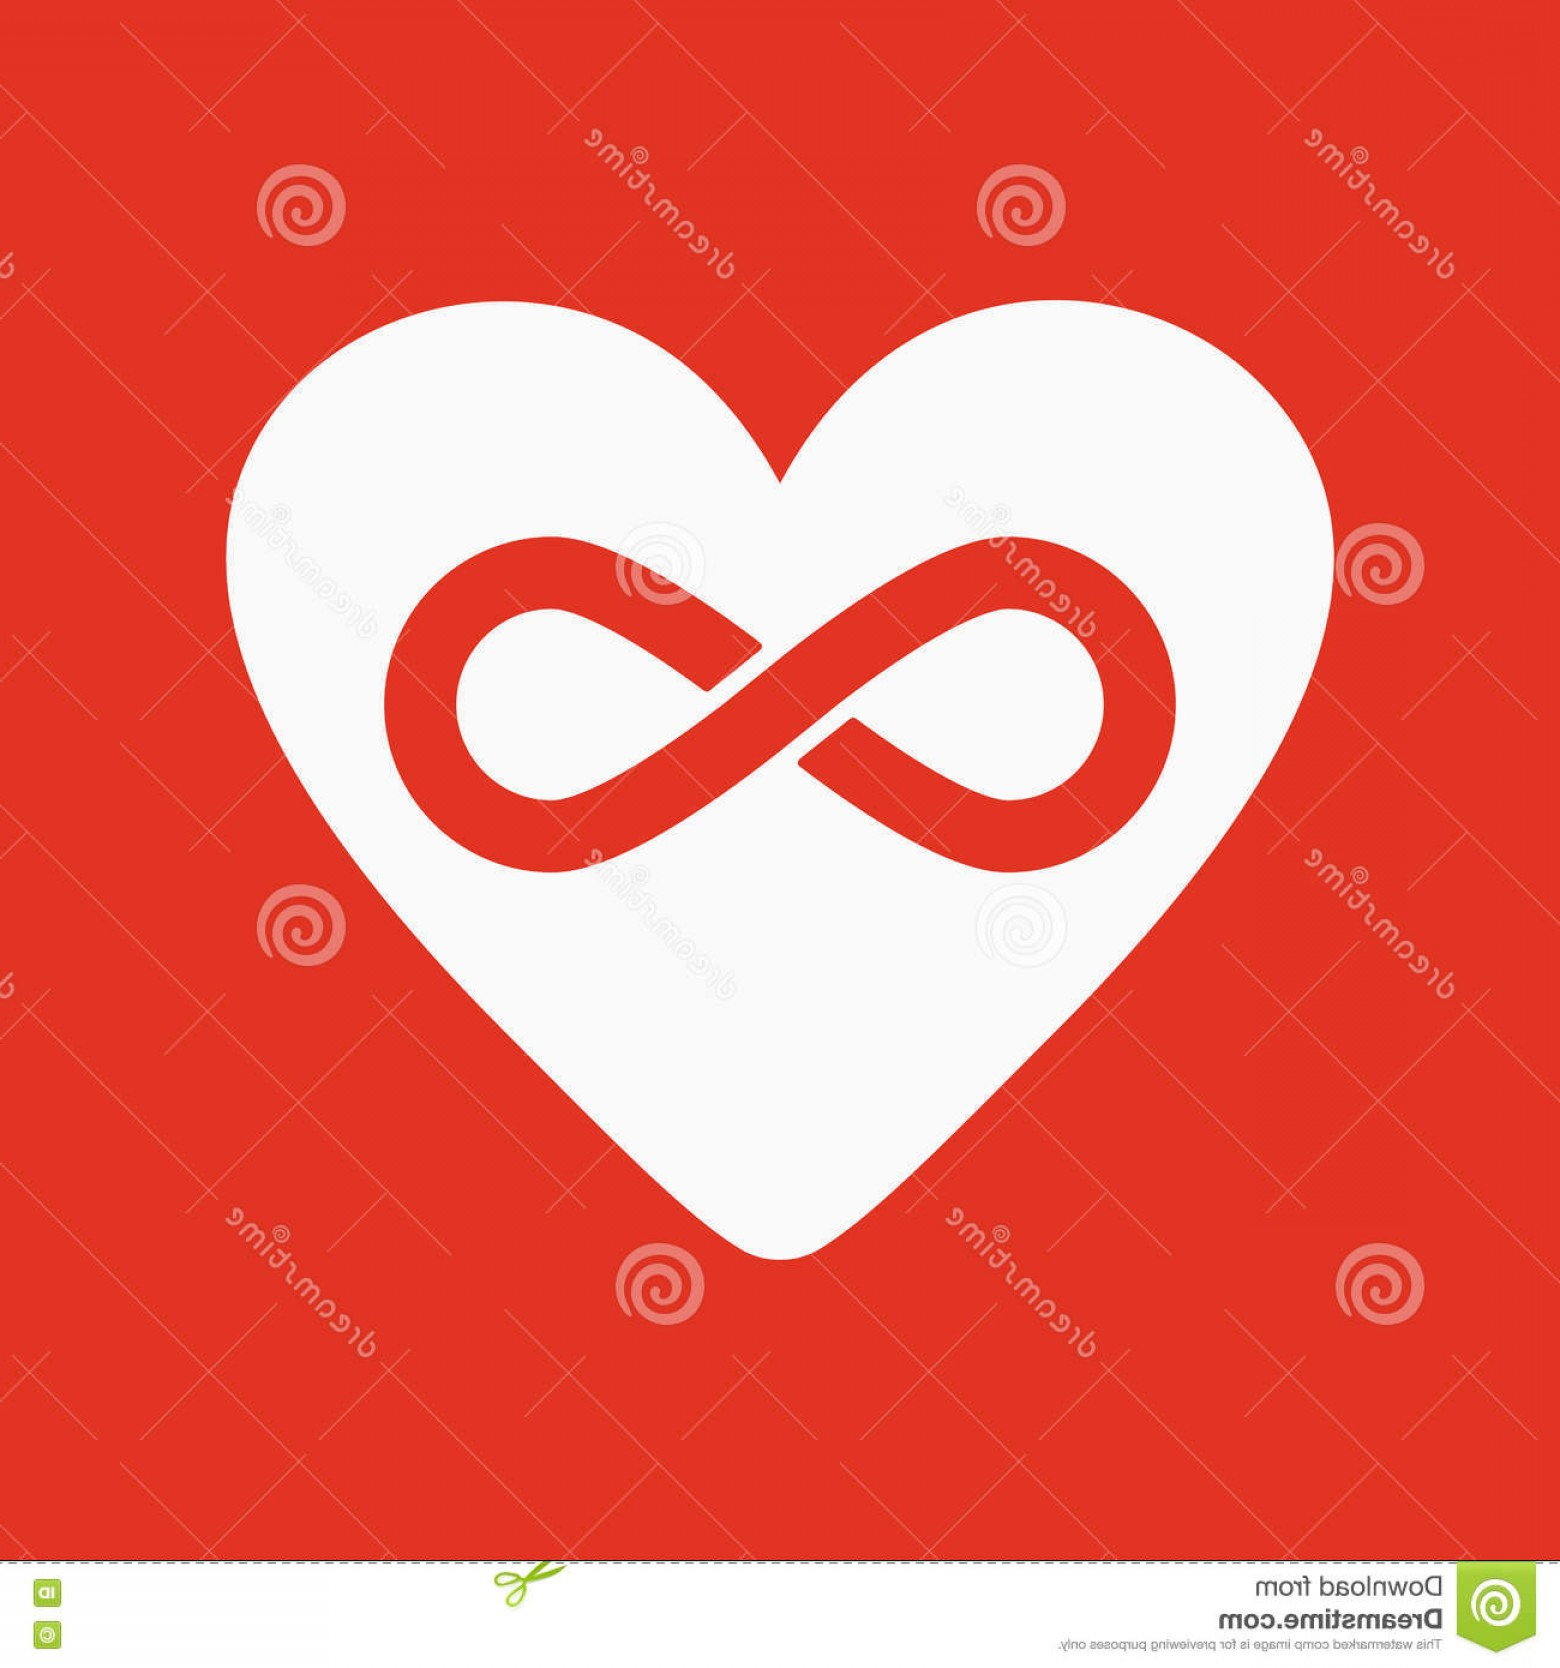 Vector Infinity Symbol Hearts: Stock Illustration Heart Infinity Icon Heart Infinity Symbol Flat Vector Illustration Image